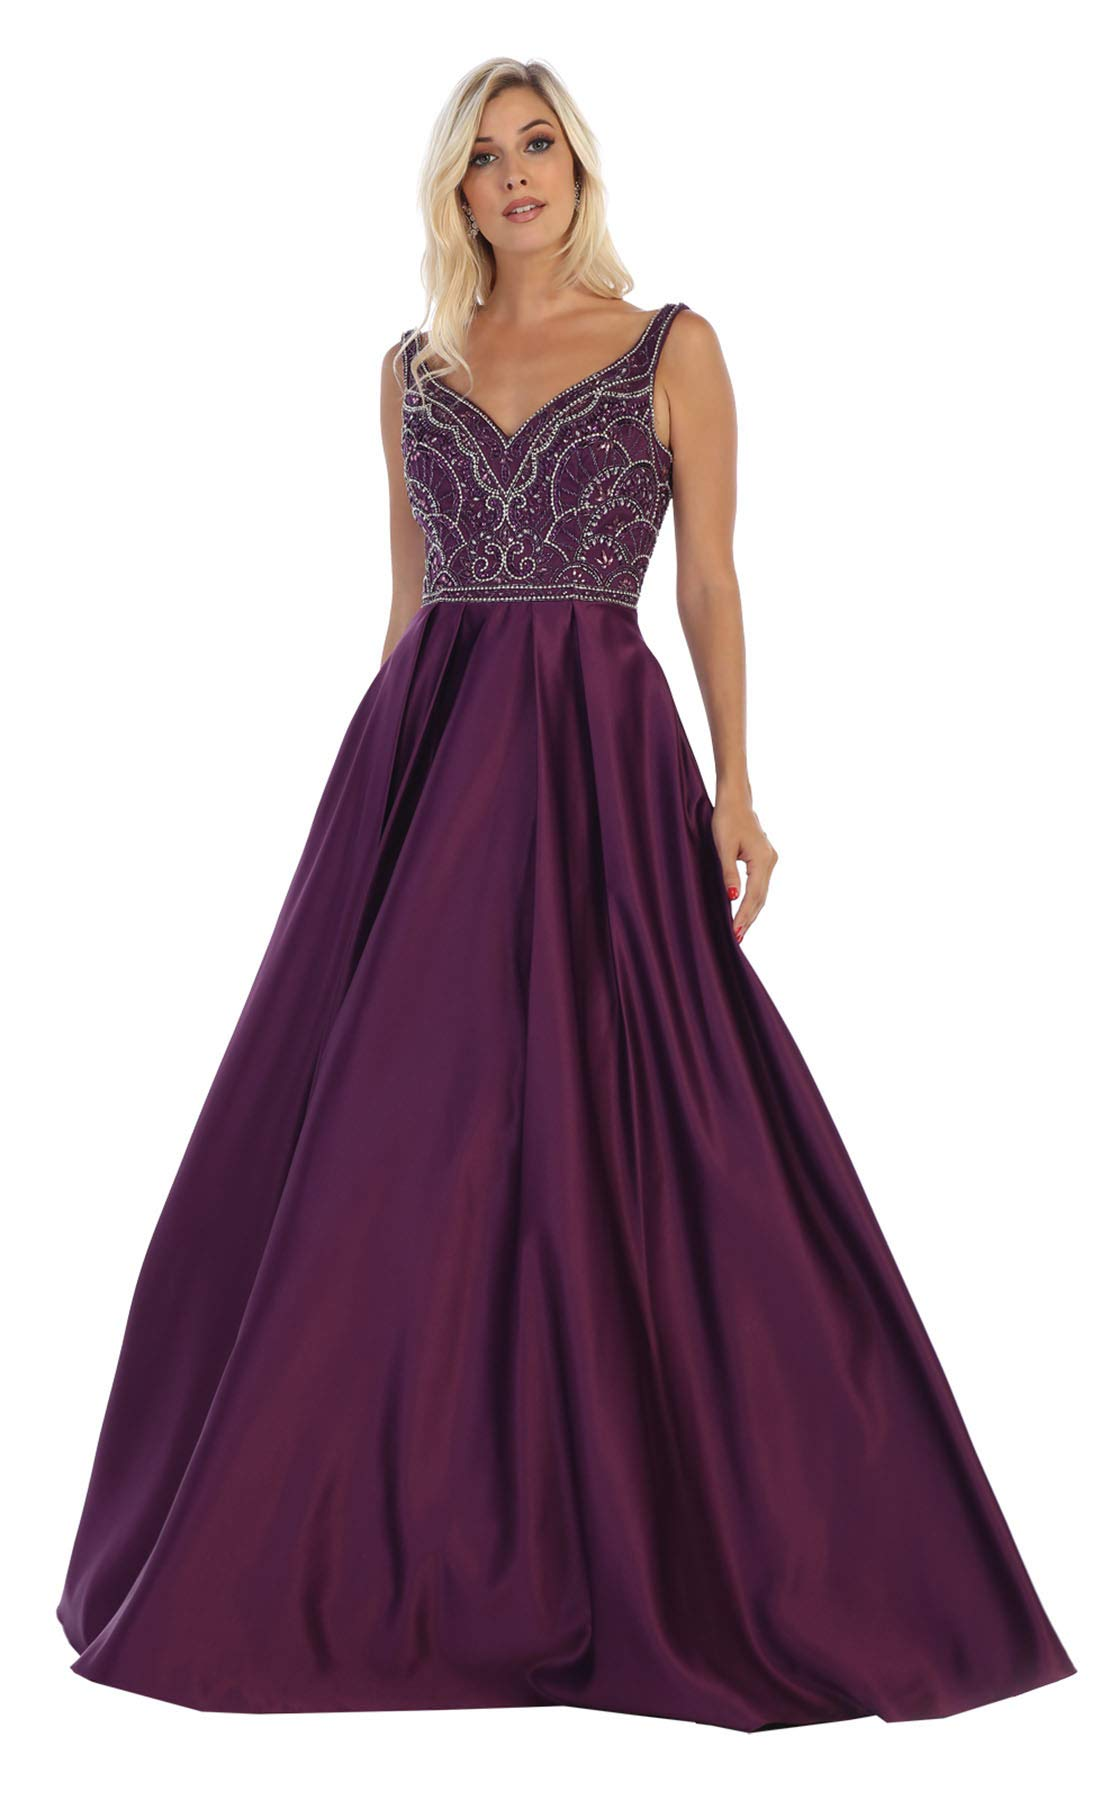 Formal Dress Shops Inc Fds1632 Beauty Pageant Elegant Formal Gown Eggplant 12